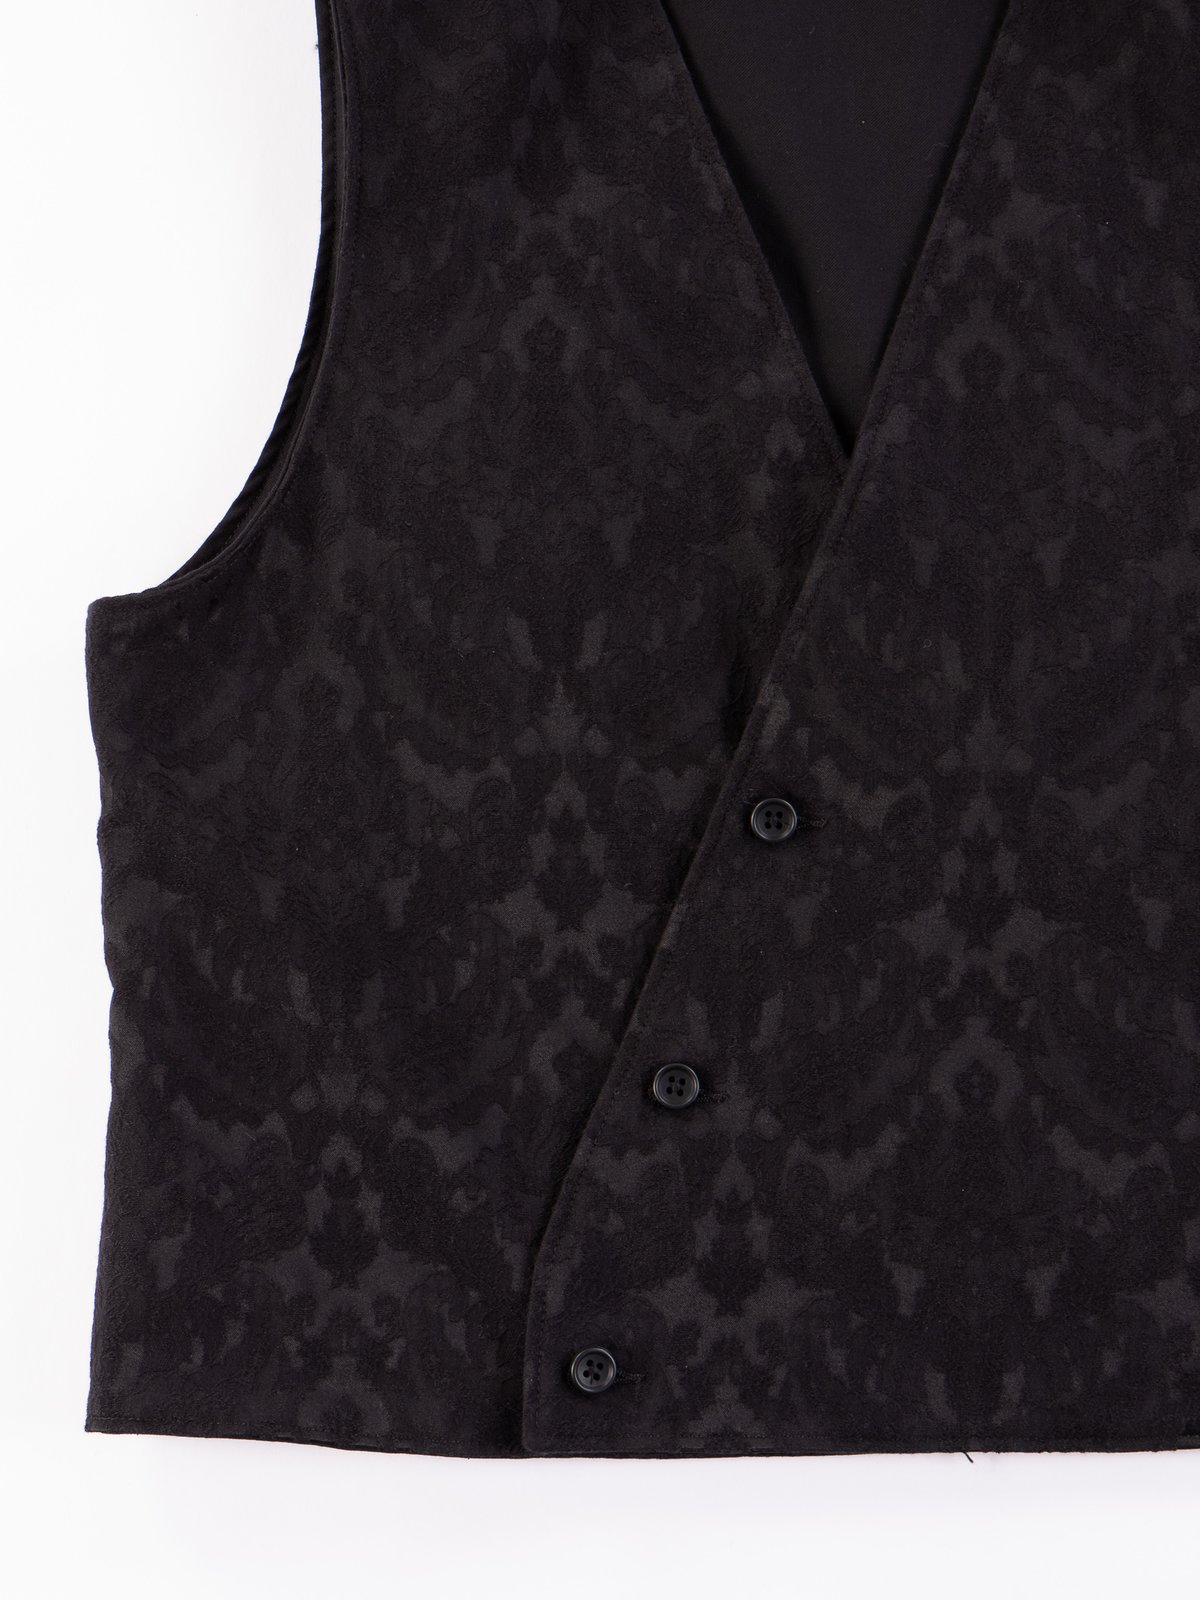 Black Worsted Wool Gabardine Reversible Vest - Image 9